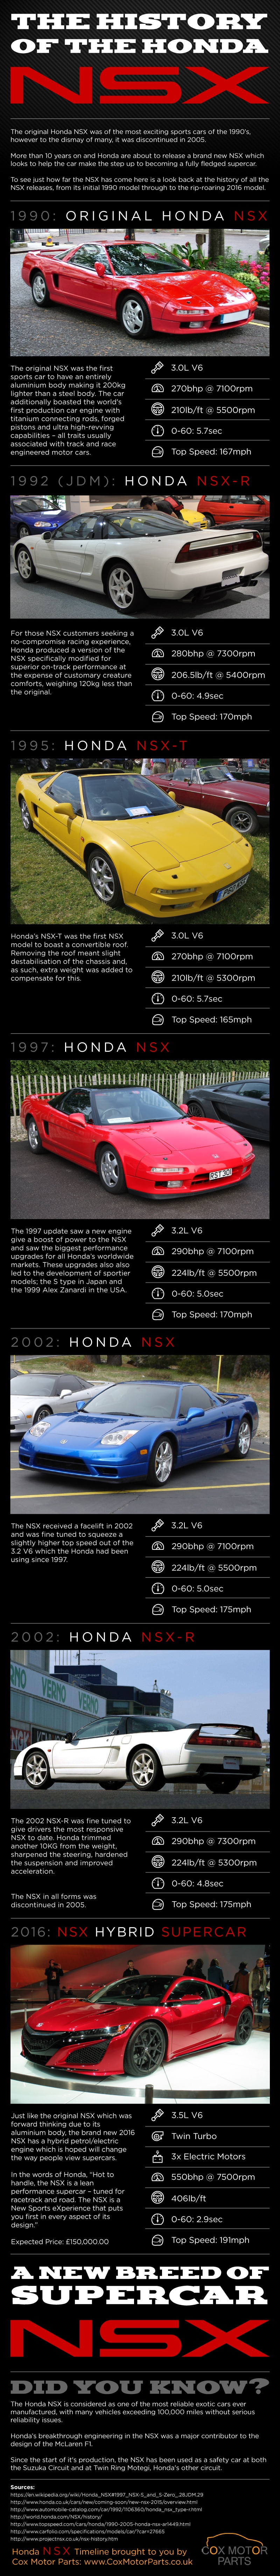 The History Of The Honda NSX [Infographic]